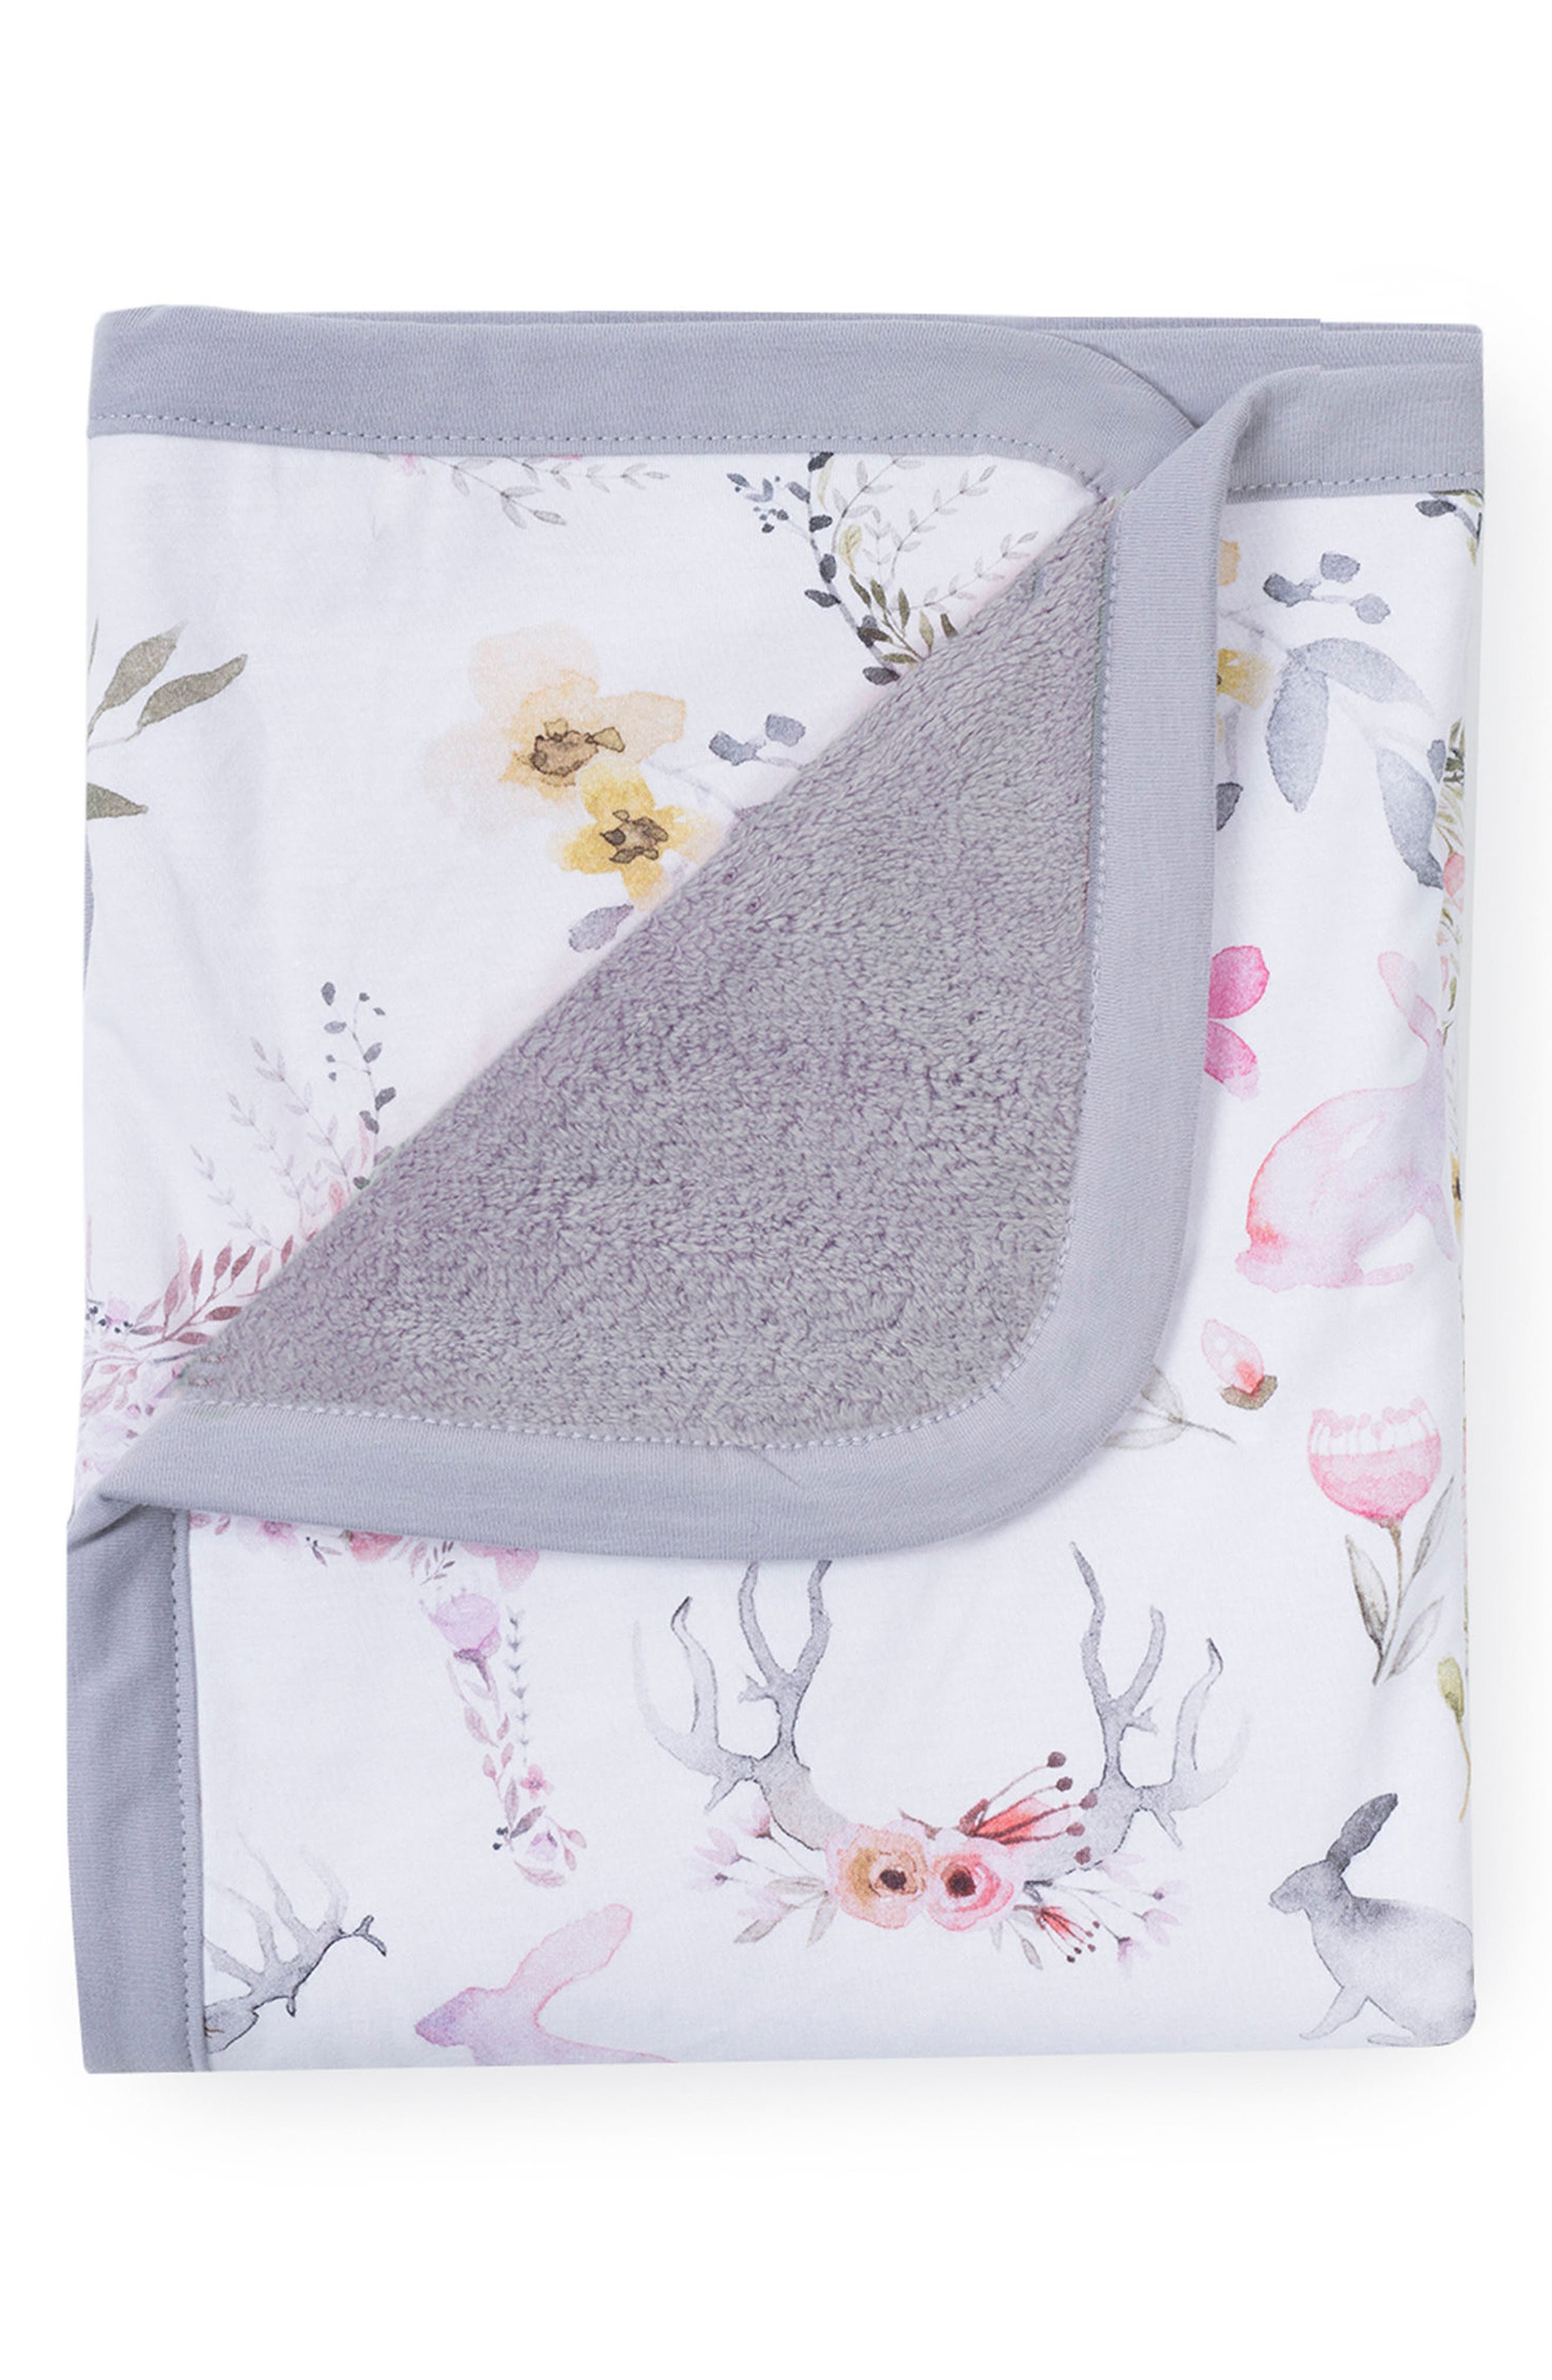 Fawn Cuddle Blanket,                         Main,                         color, Fawn